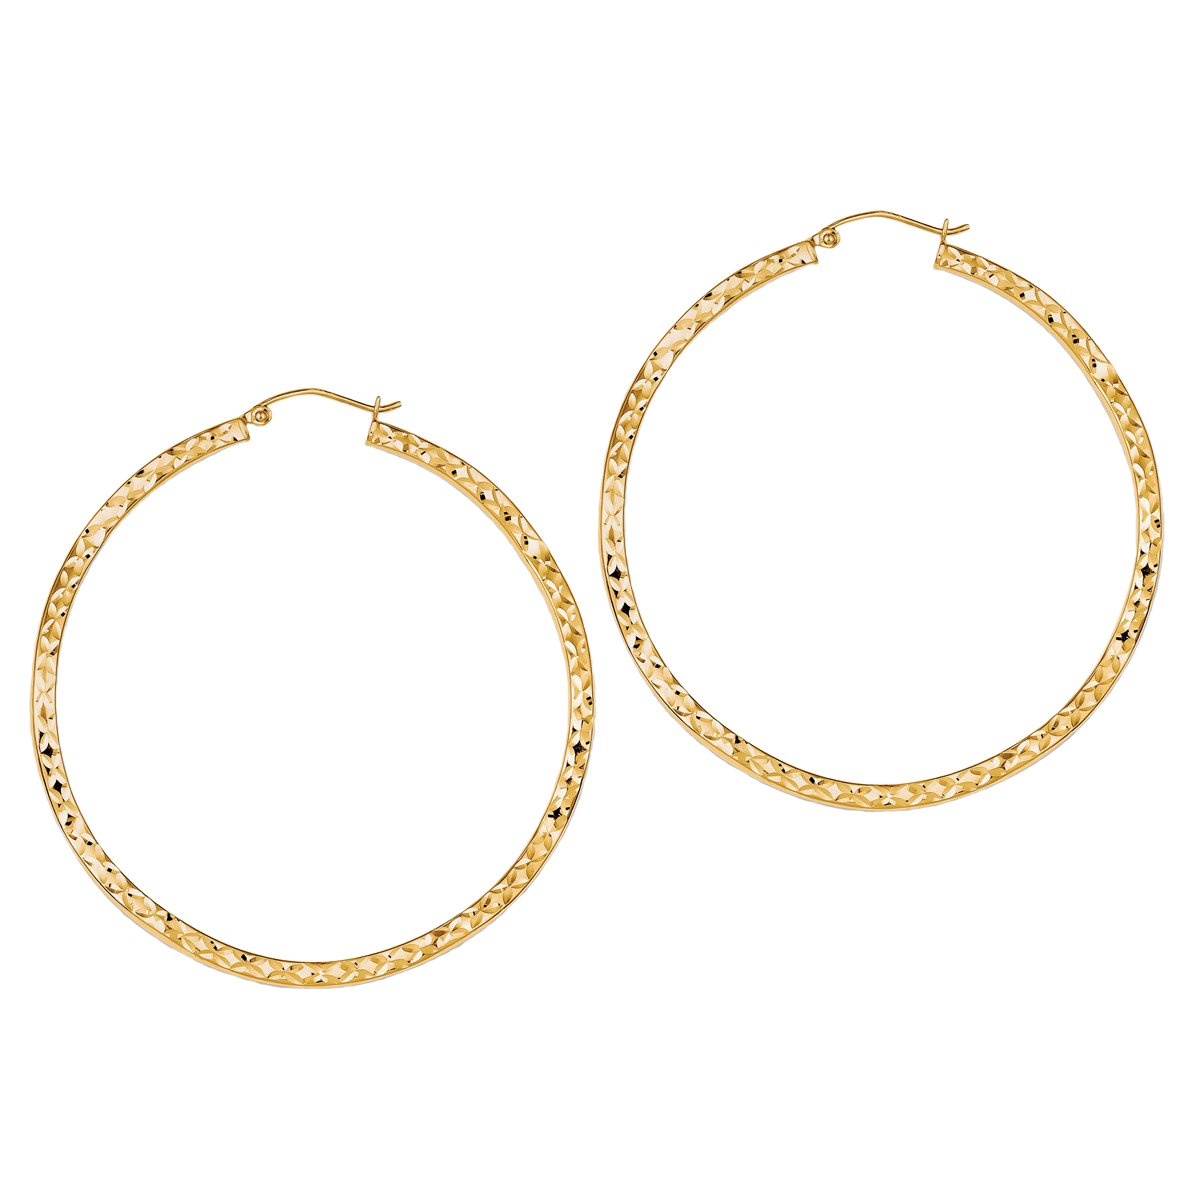 Designs by Nathan 14k Yellow Gold Plated 925 Silver Diamond Cut Wavy Hoop Earrings (sizes vary)) ((55x55mm about 2 and 1/4 inches))